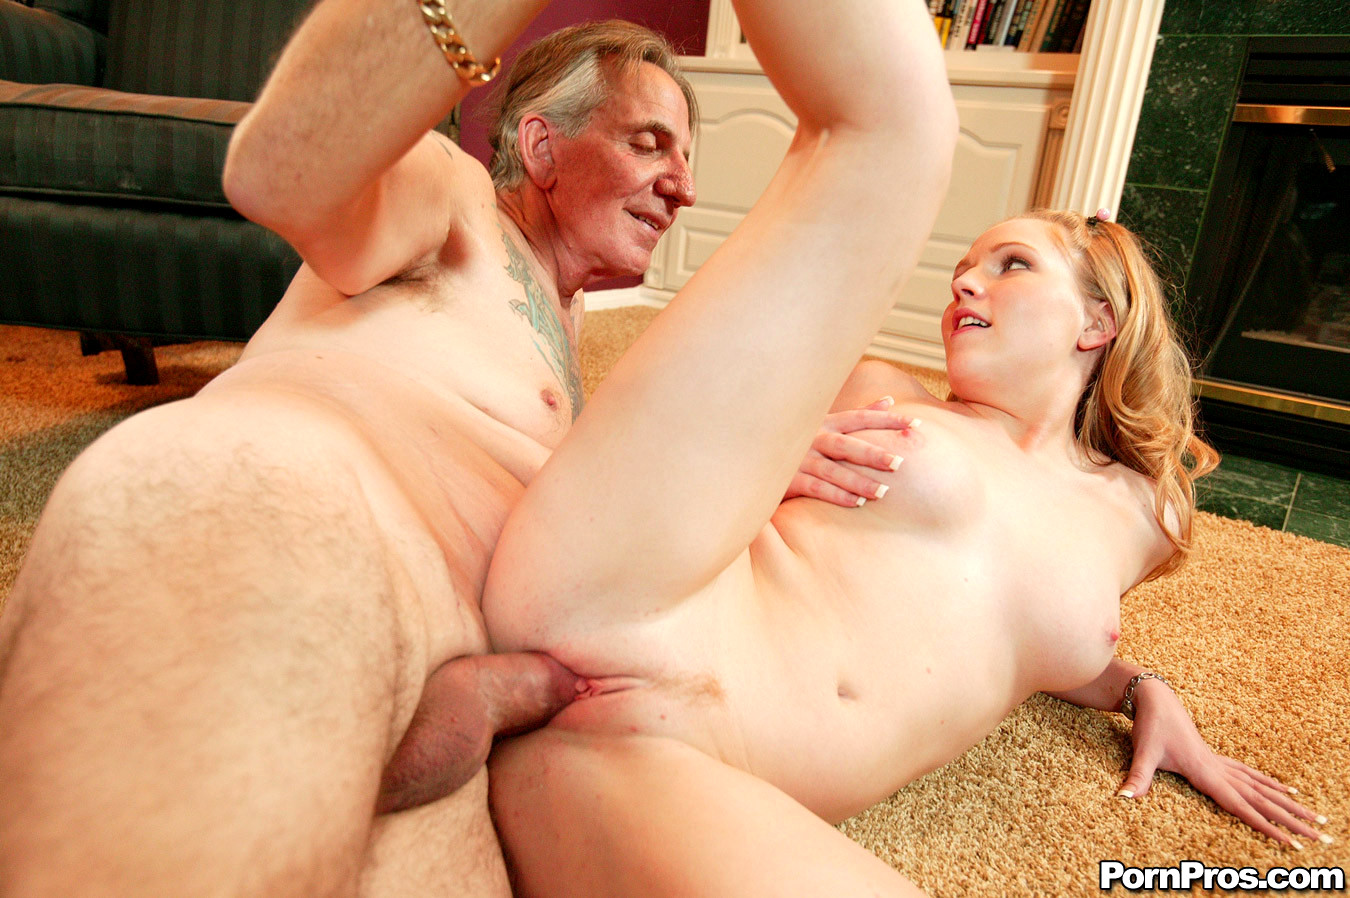 My Sugar Daddy Fuck Me And Mom Seduces Beautiful Compeer Chum S Daughter Spanksgiving